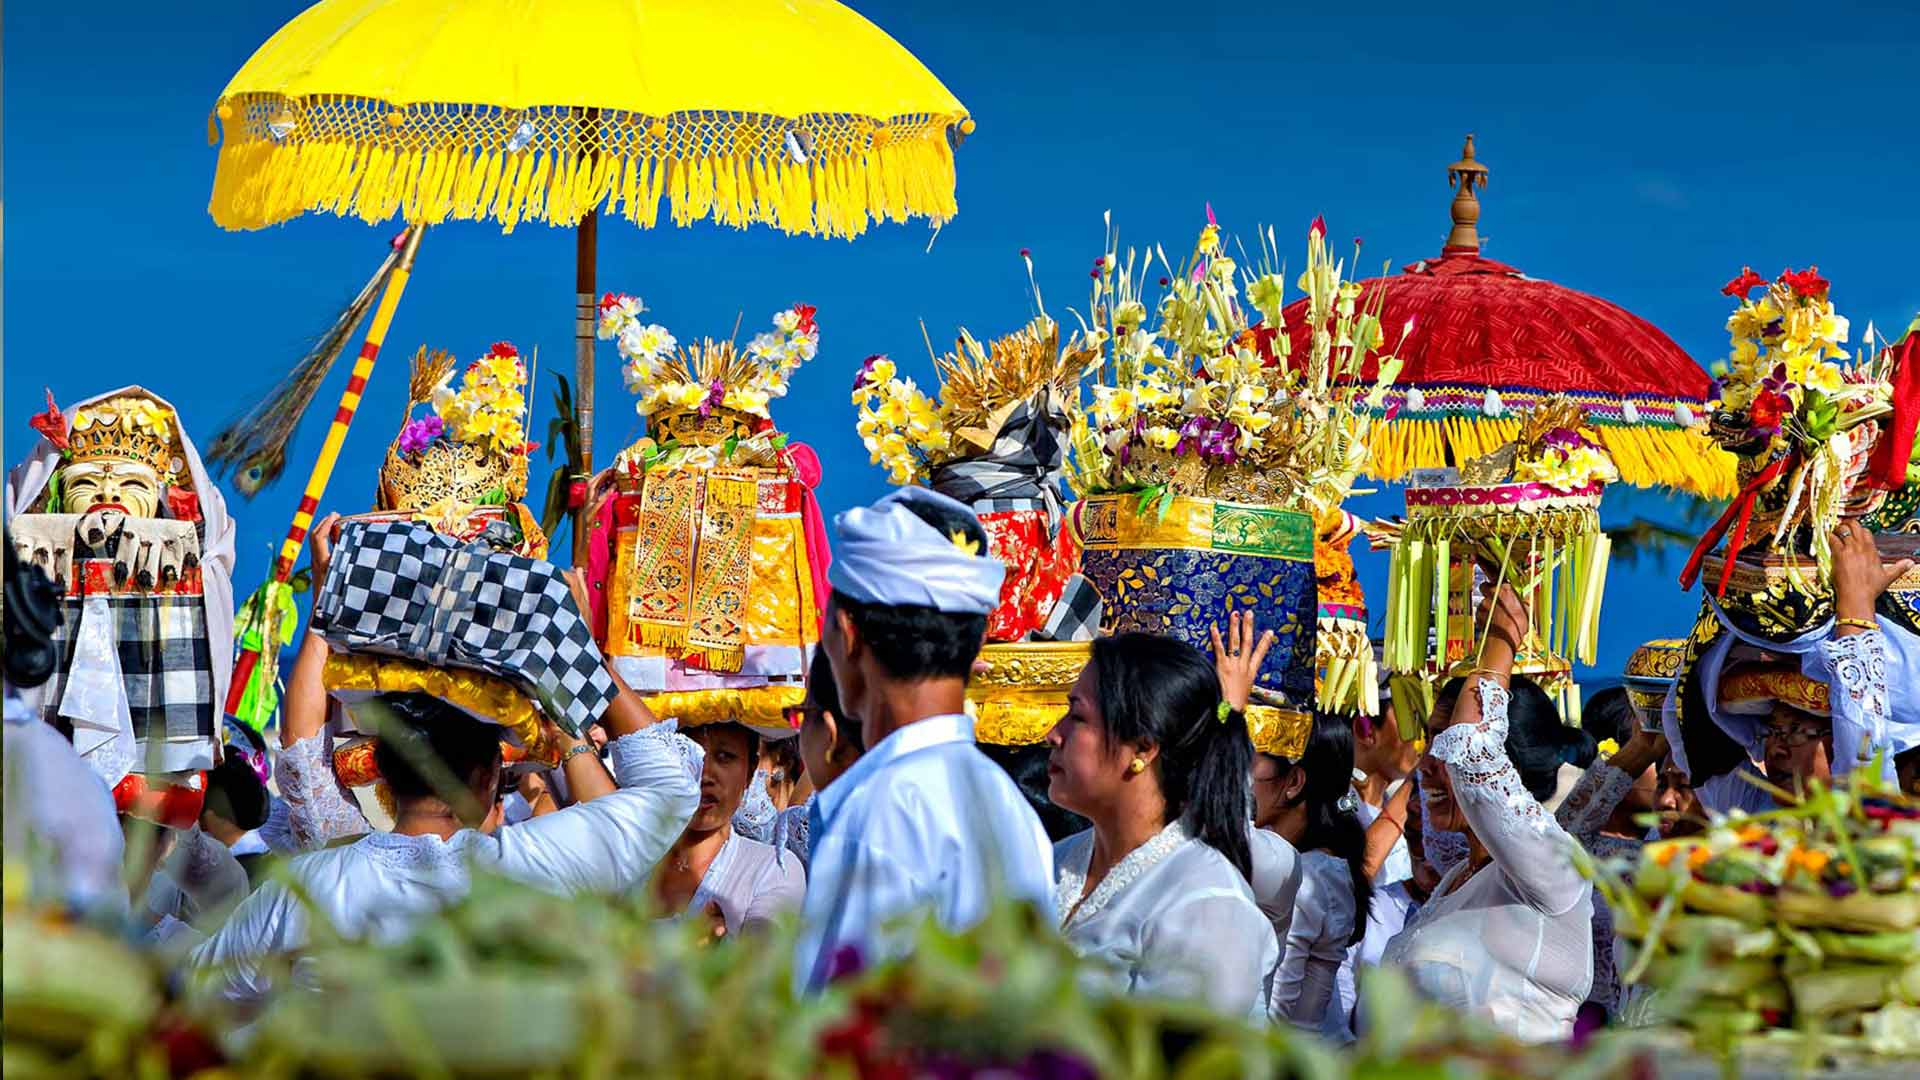 Bali Tourism from China to Rise in 2015 - The Worlds ...